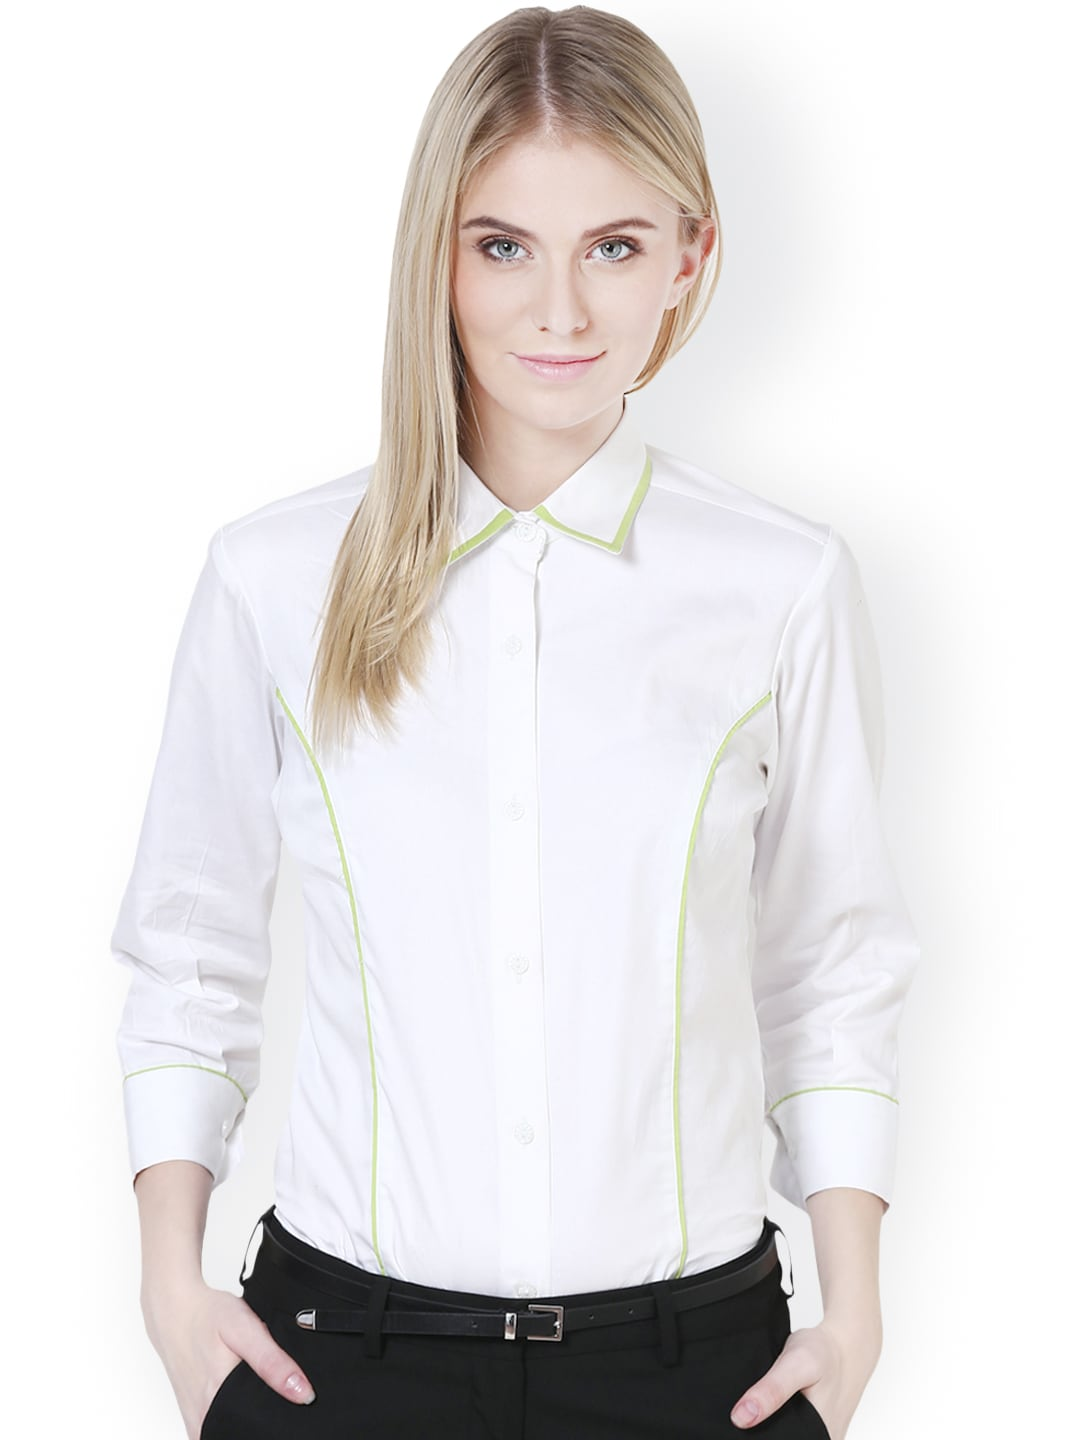 f0a797f72496 Formal White Shirts For Women - Buy Formal White Shirts For Women online in  India